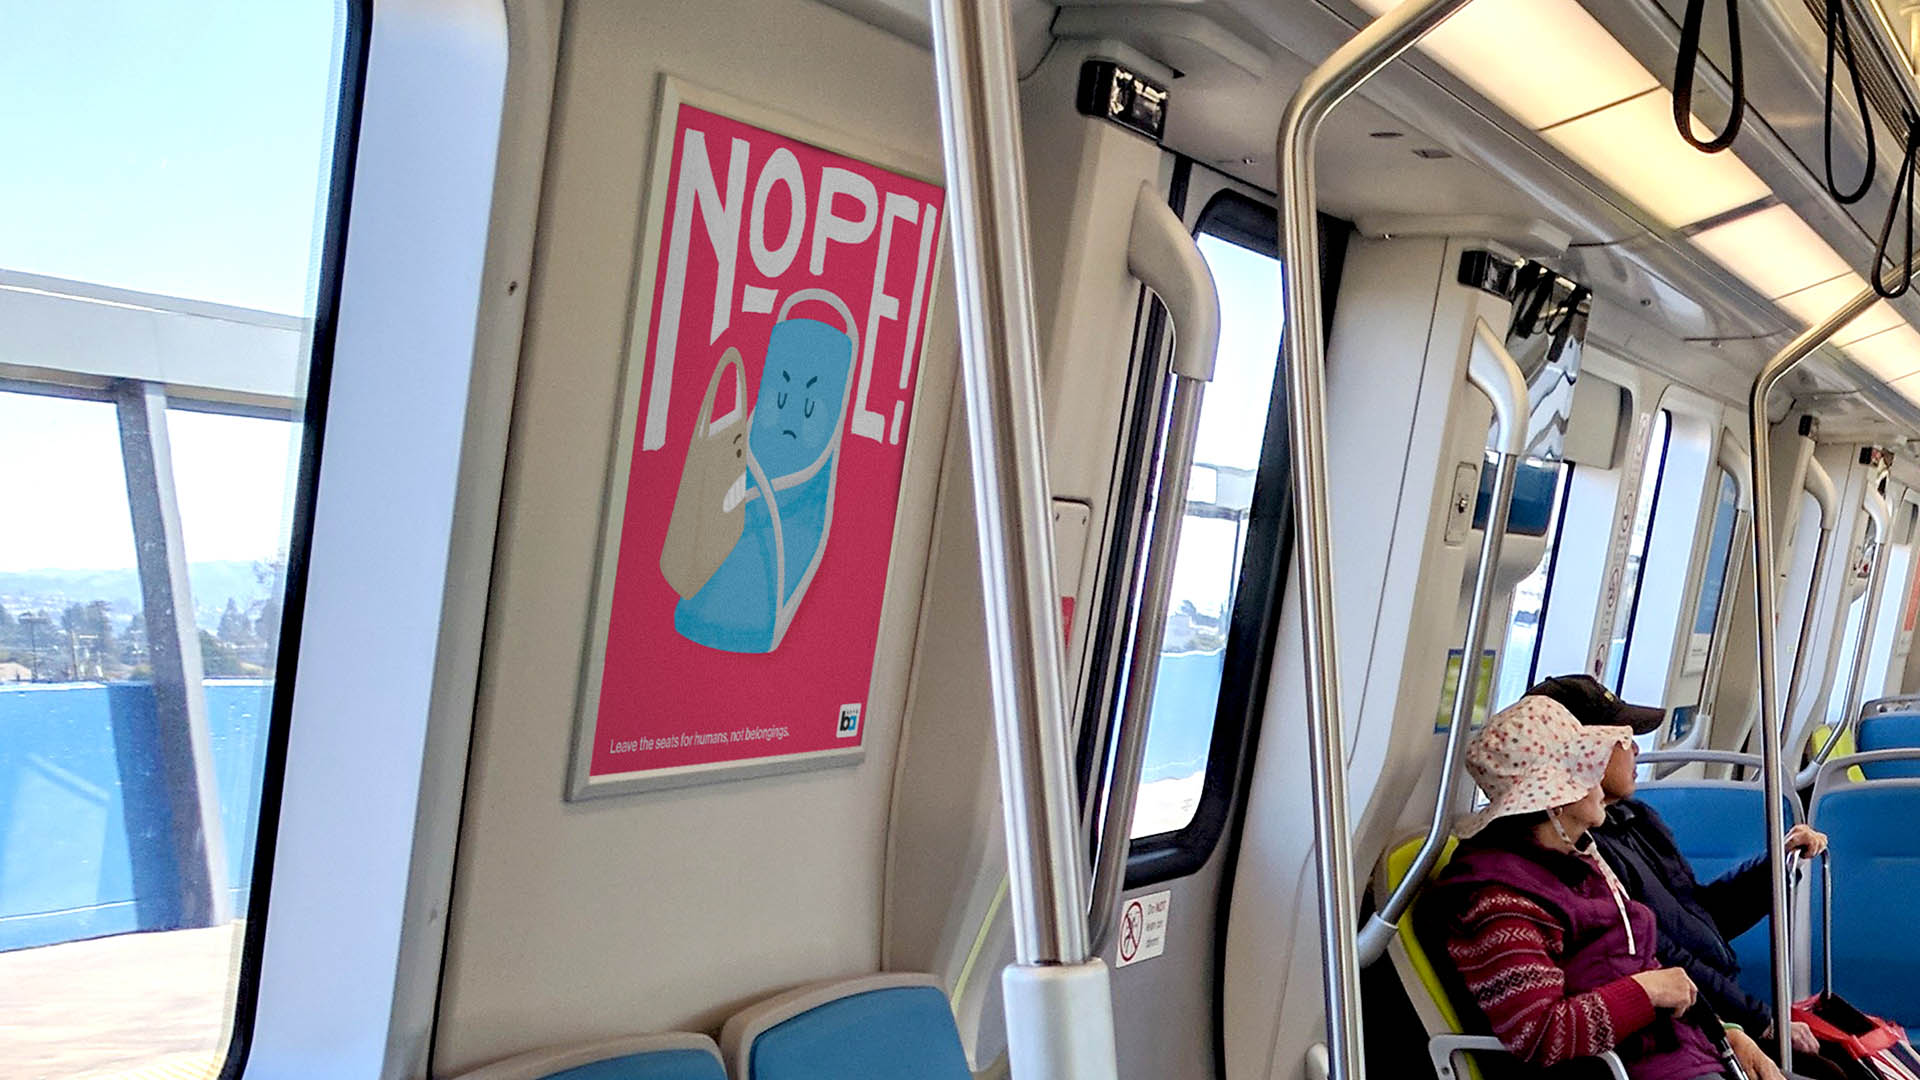 BART posters